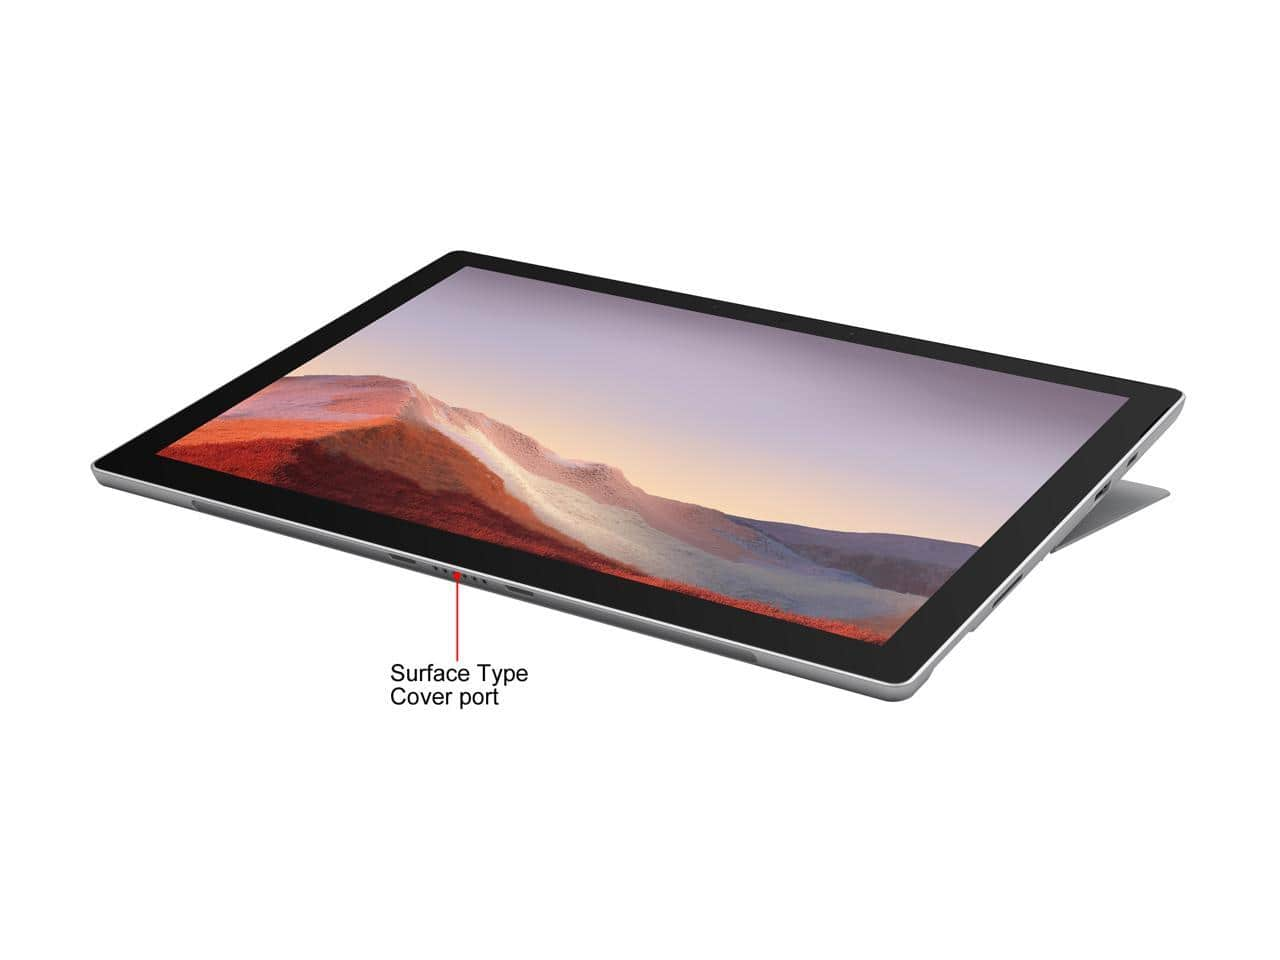 Microsoft Surface Pro 7 i5 8gb 128gb (device only) $629 Shipped